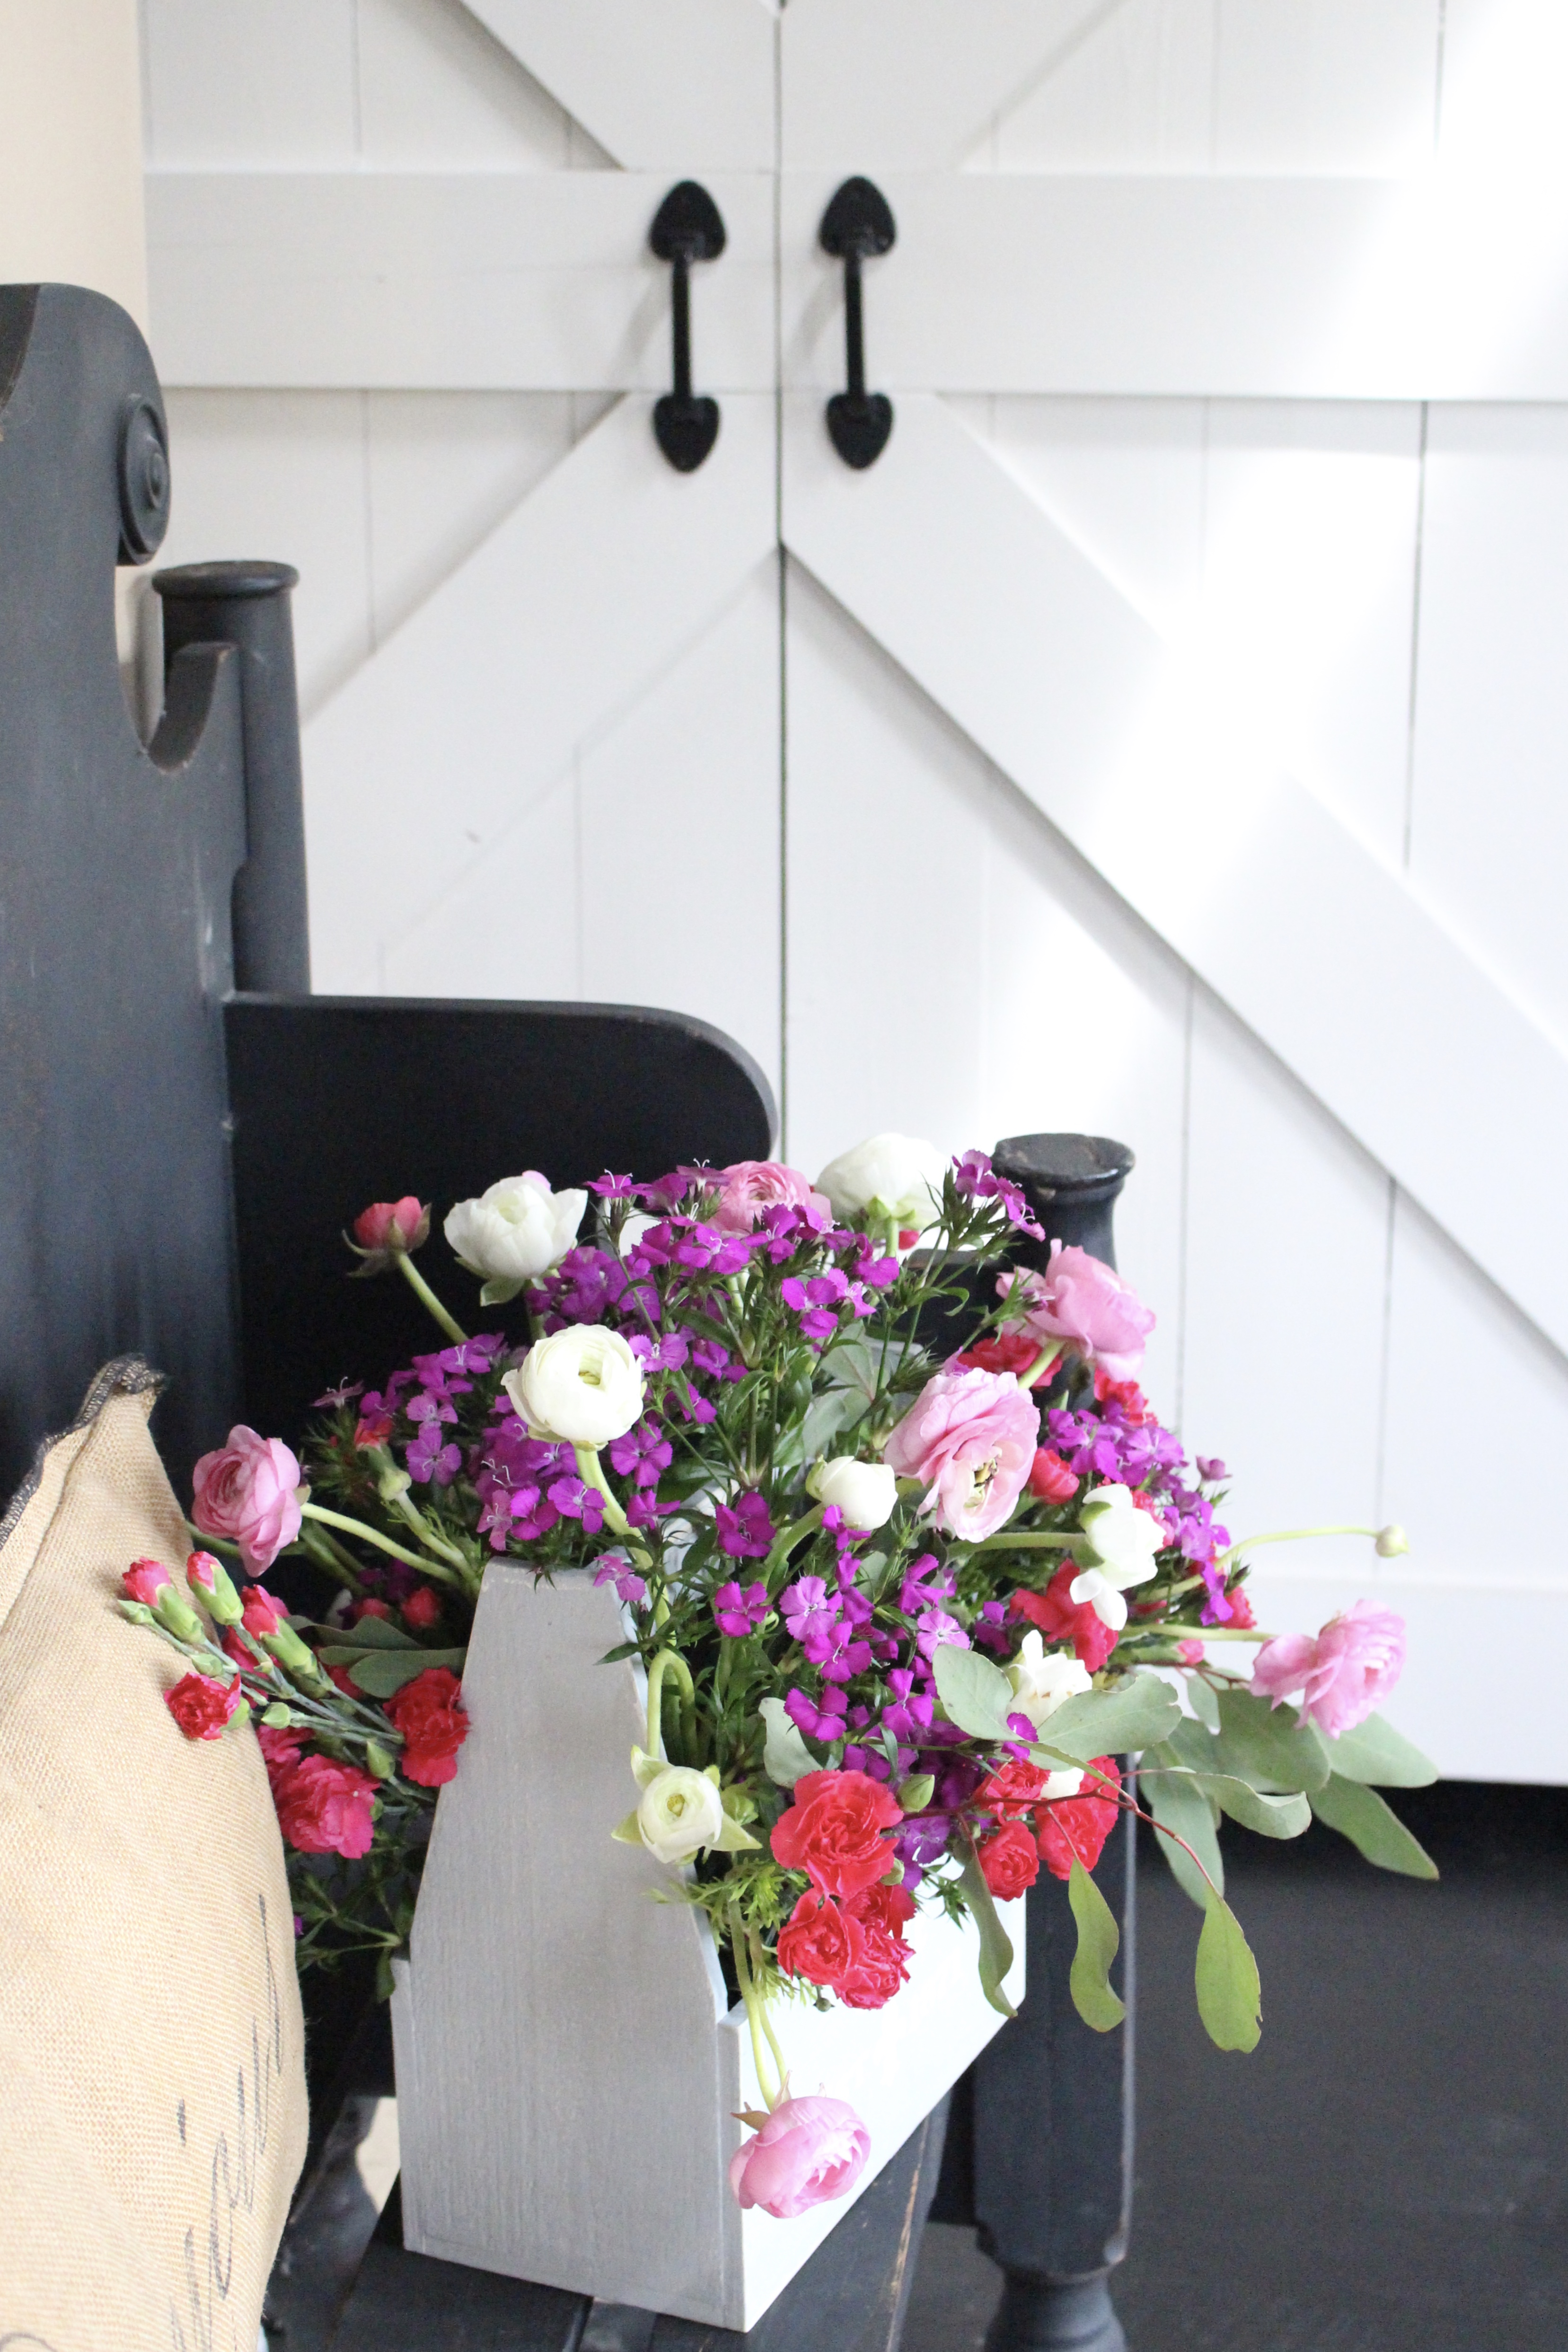 Toolbox Crate Flower Arrangement- spring flower- arranging flowers- how to arrange flowers- unusual flower vessels- arranging flowers- spring decor- flower boxes